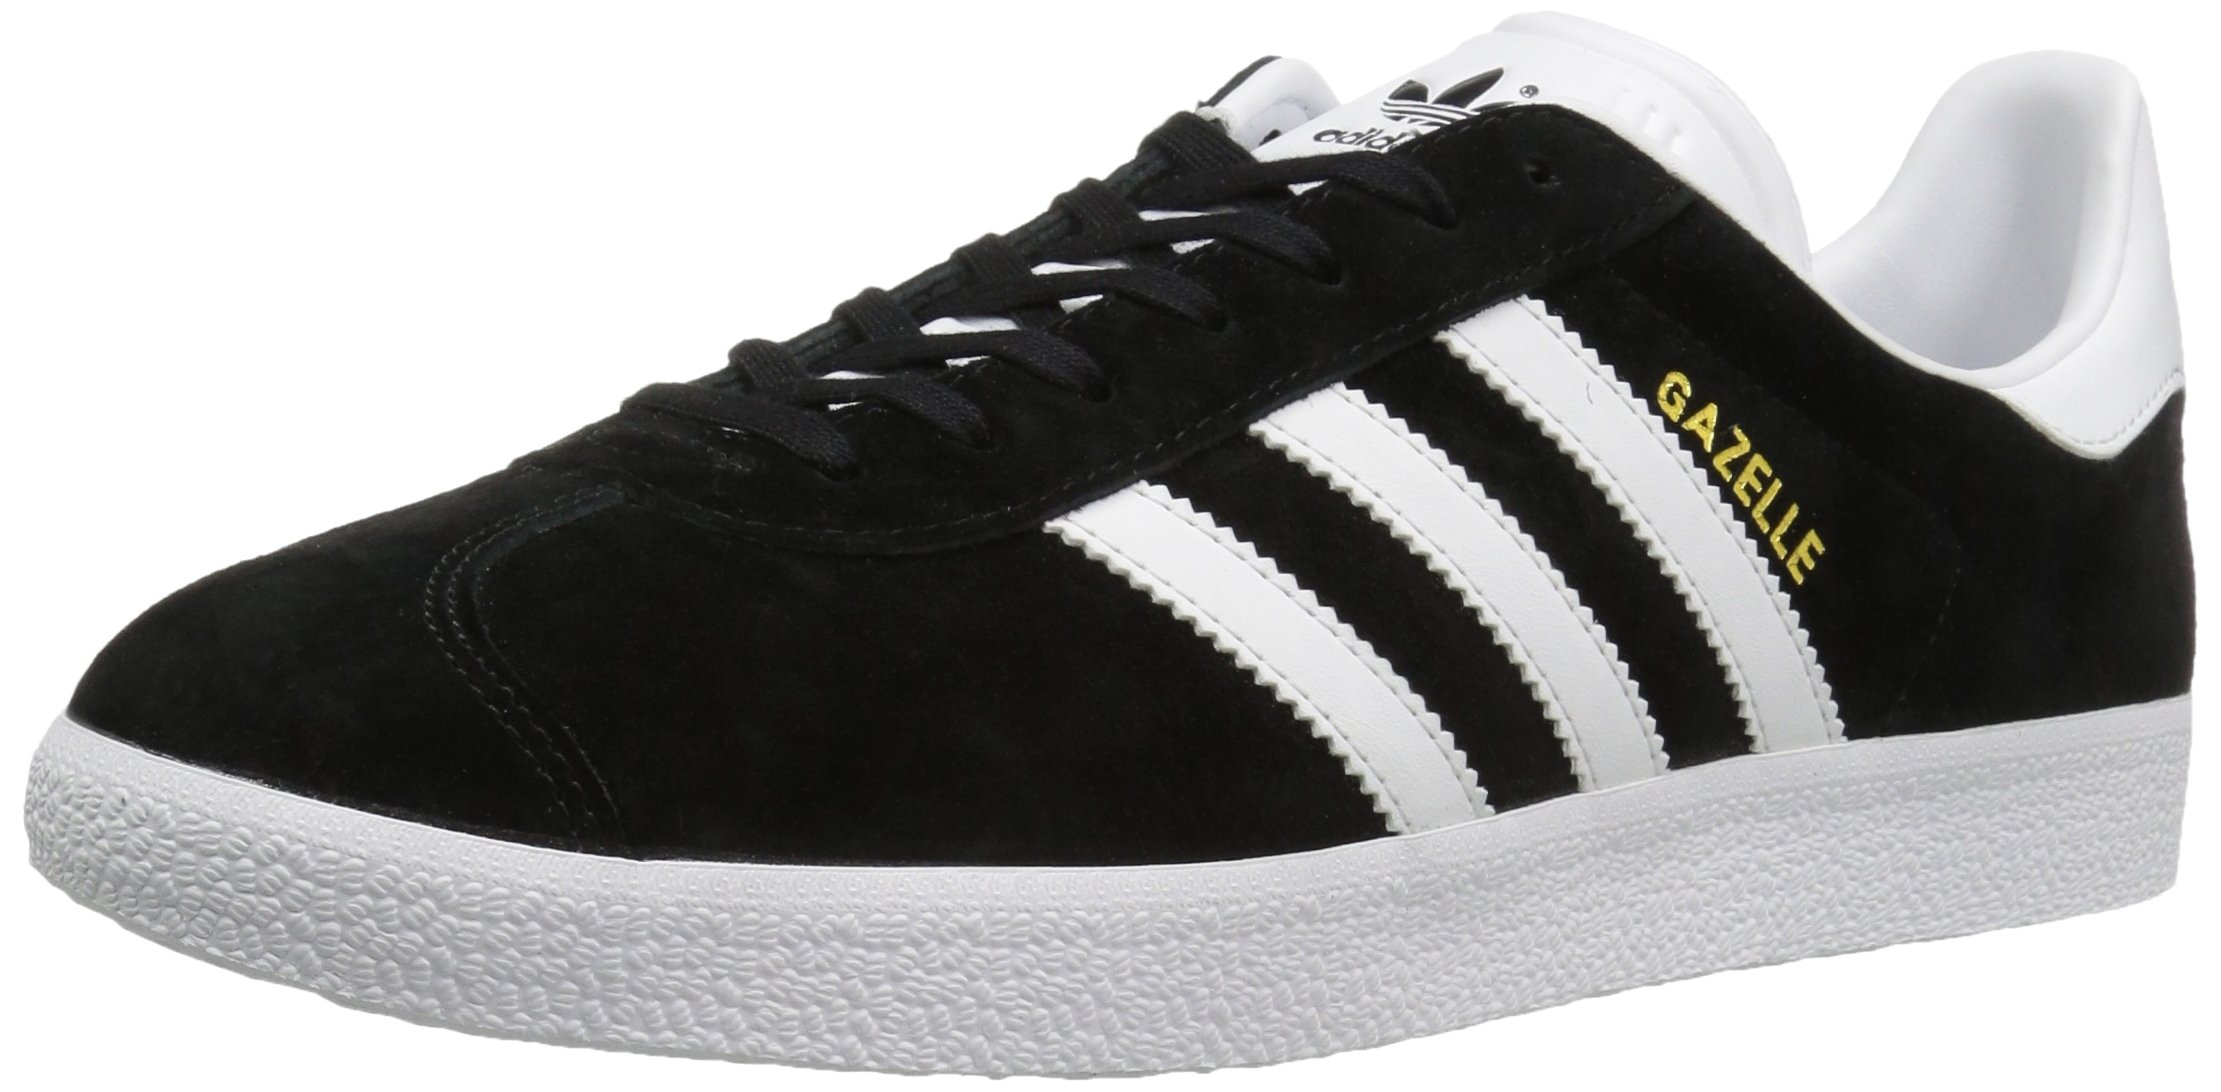 outlet store f9f0f ca553 Get Quotations · adidas Mens Gazelle Casual Sneakers